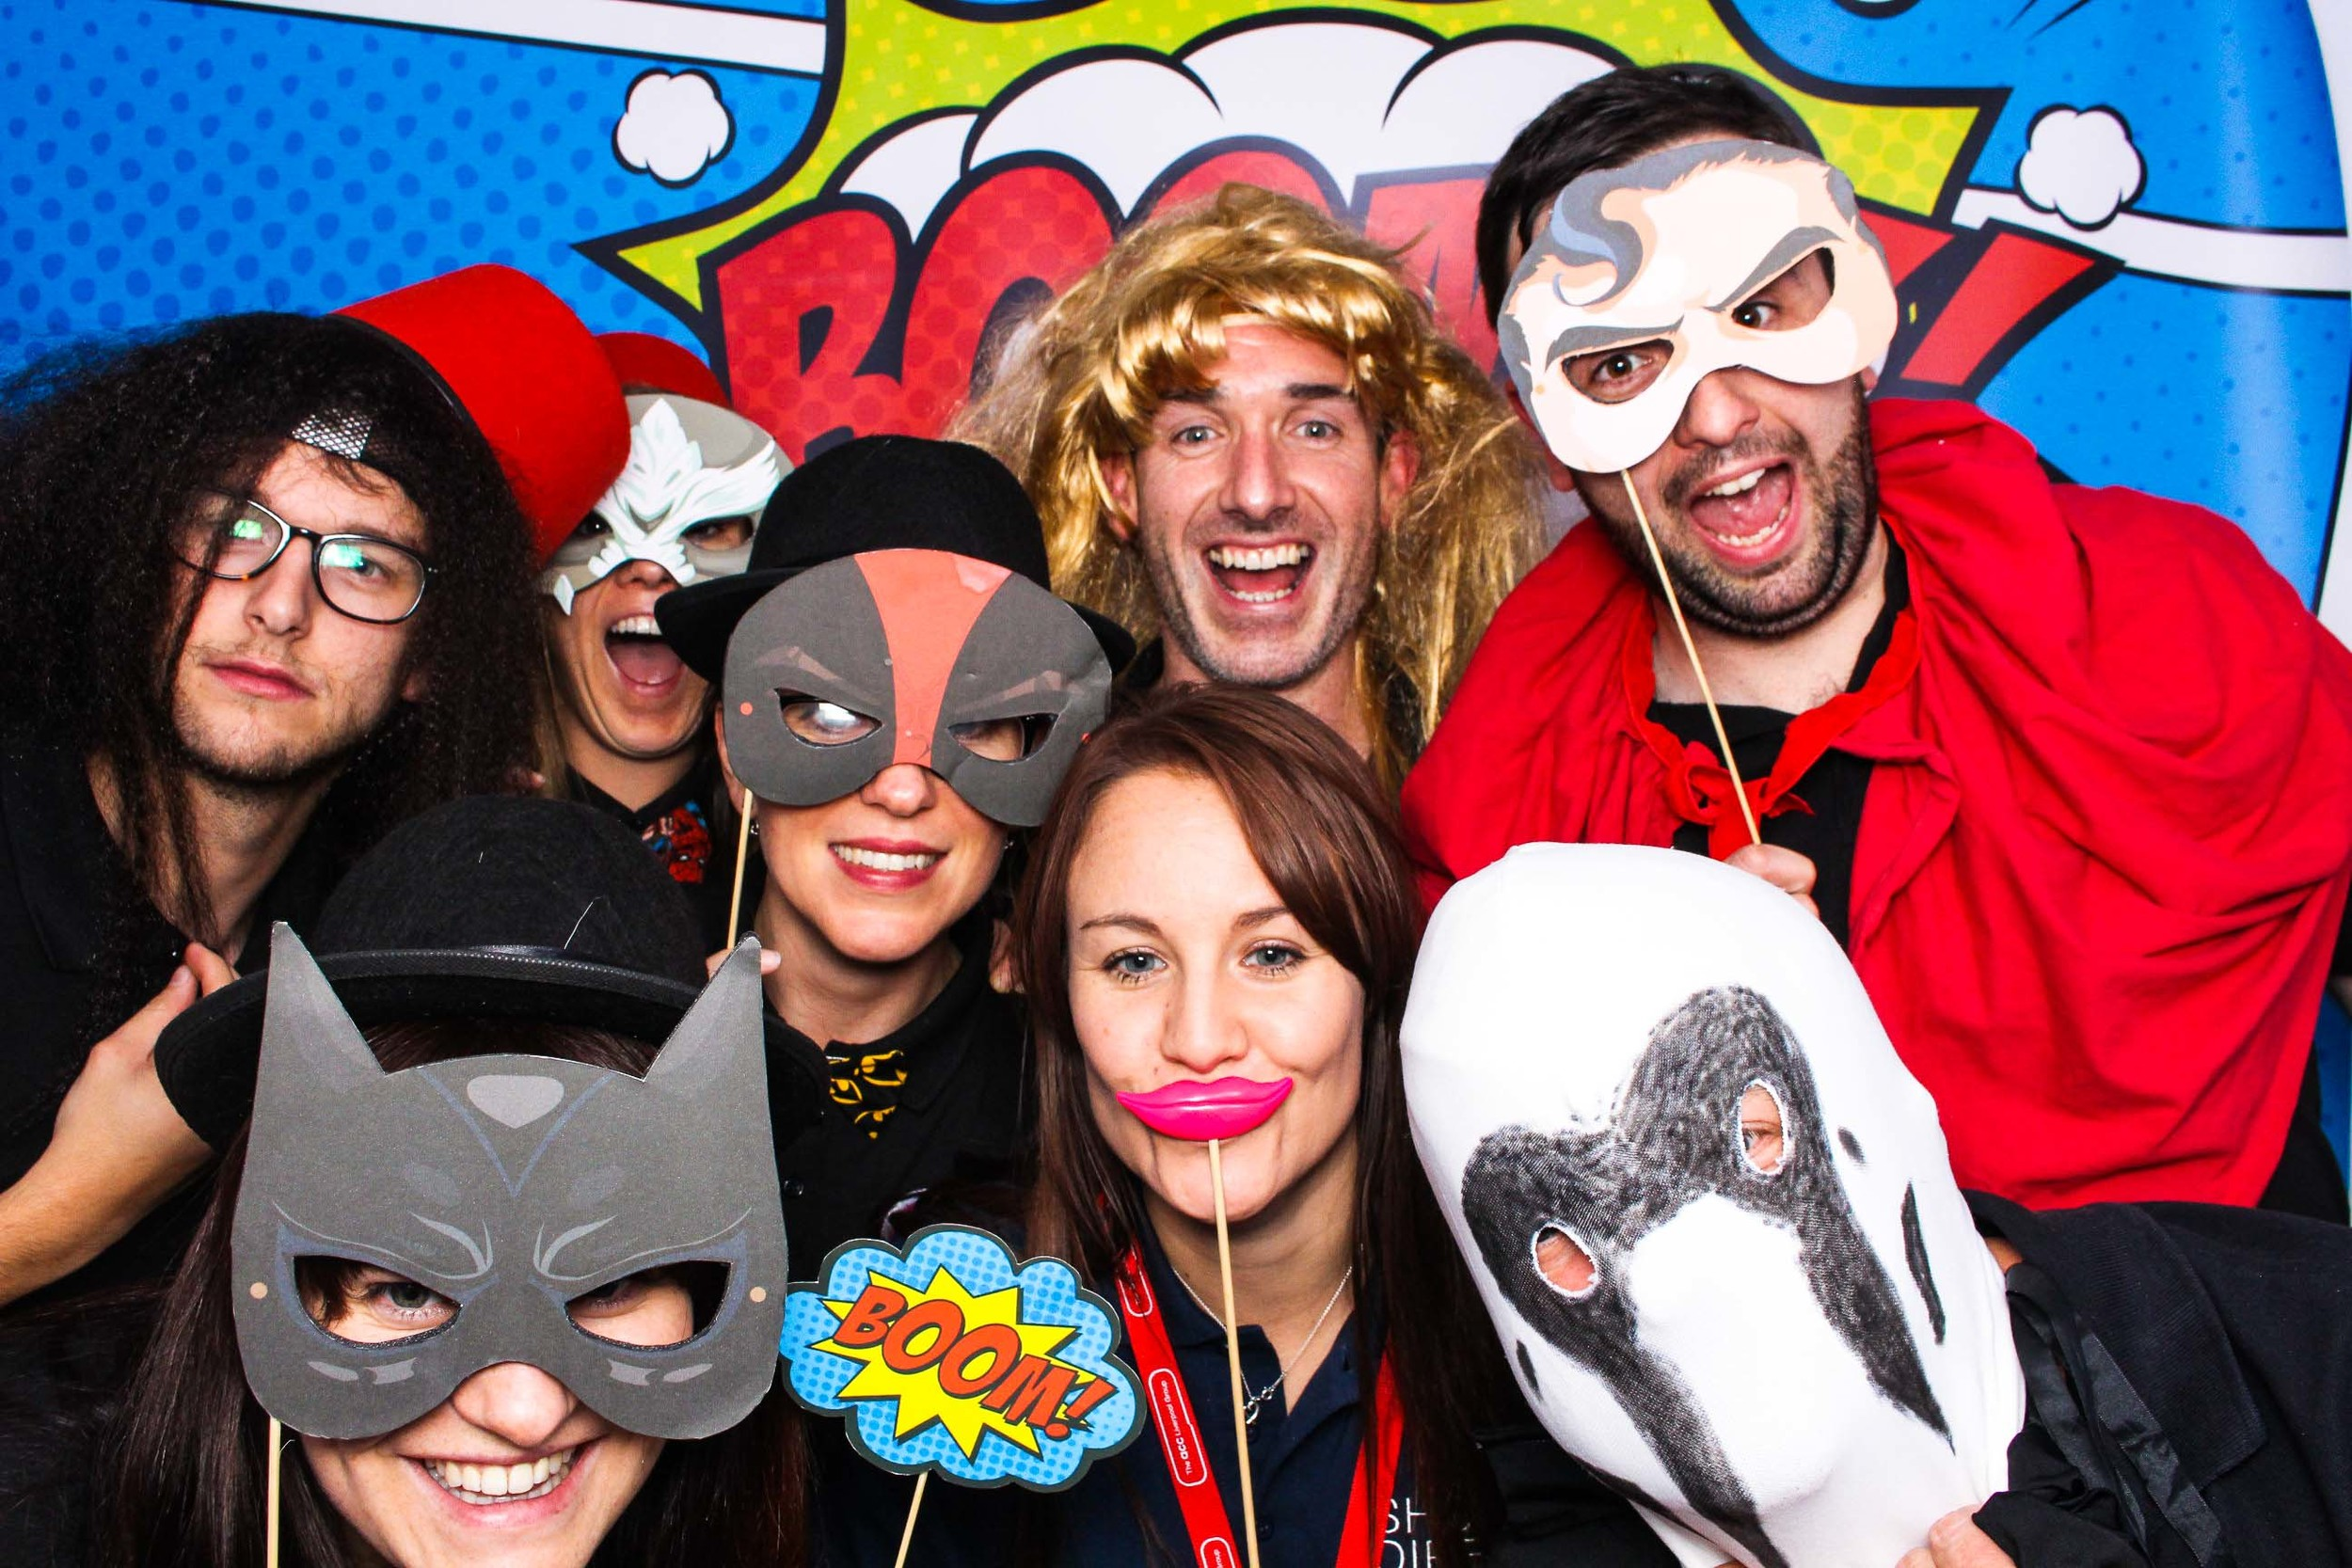 Fotoauto Photo Booth Hire - Shop Direct-336.jpg